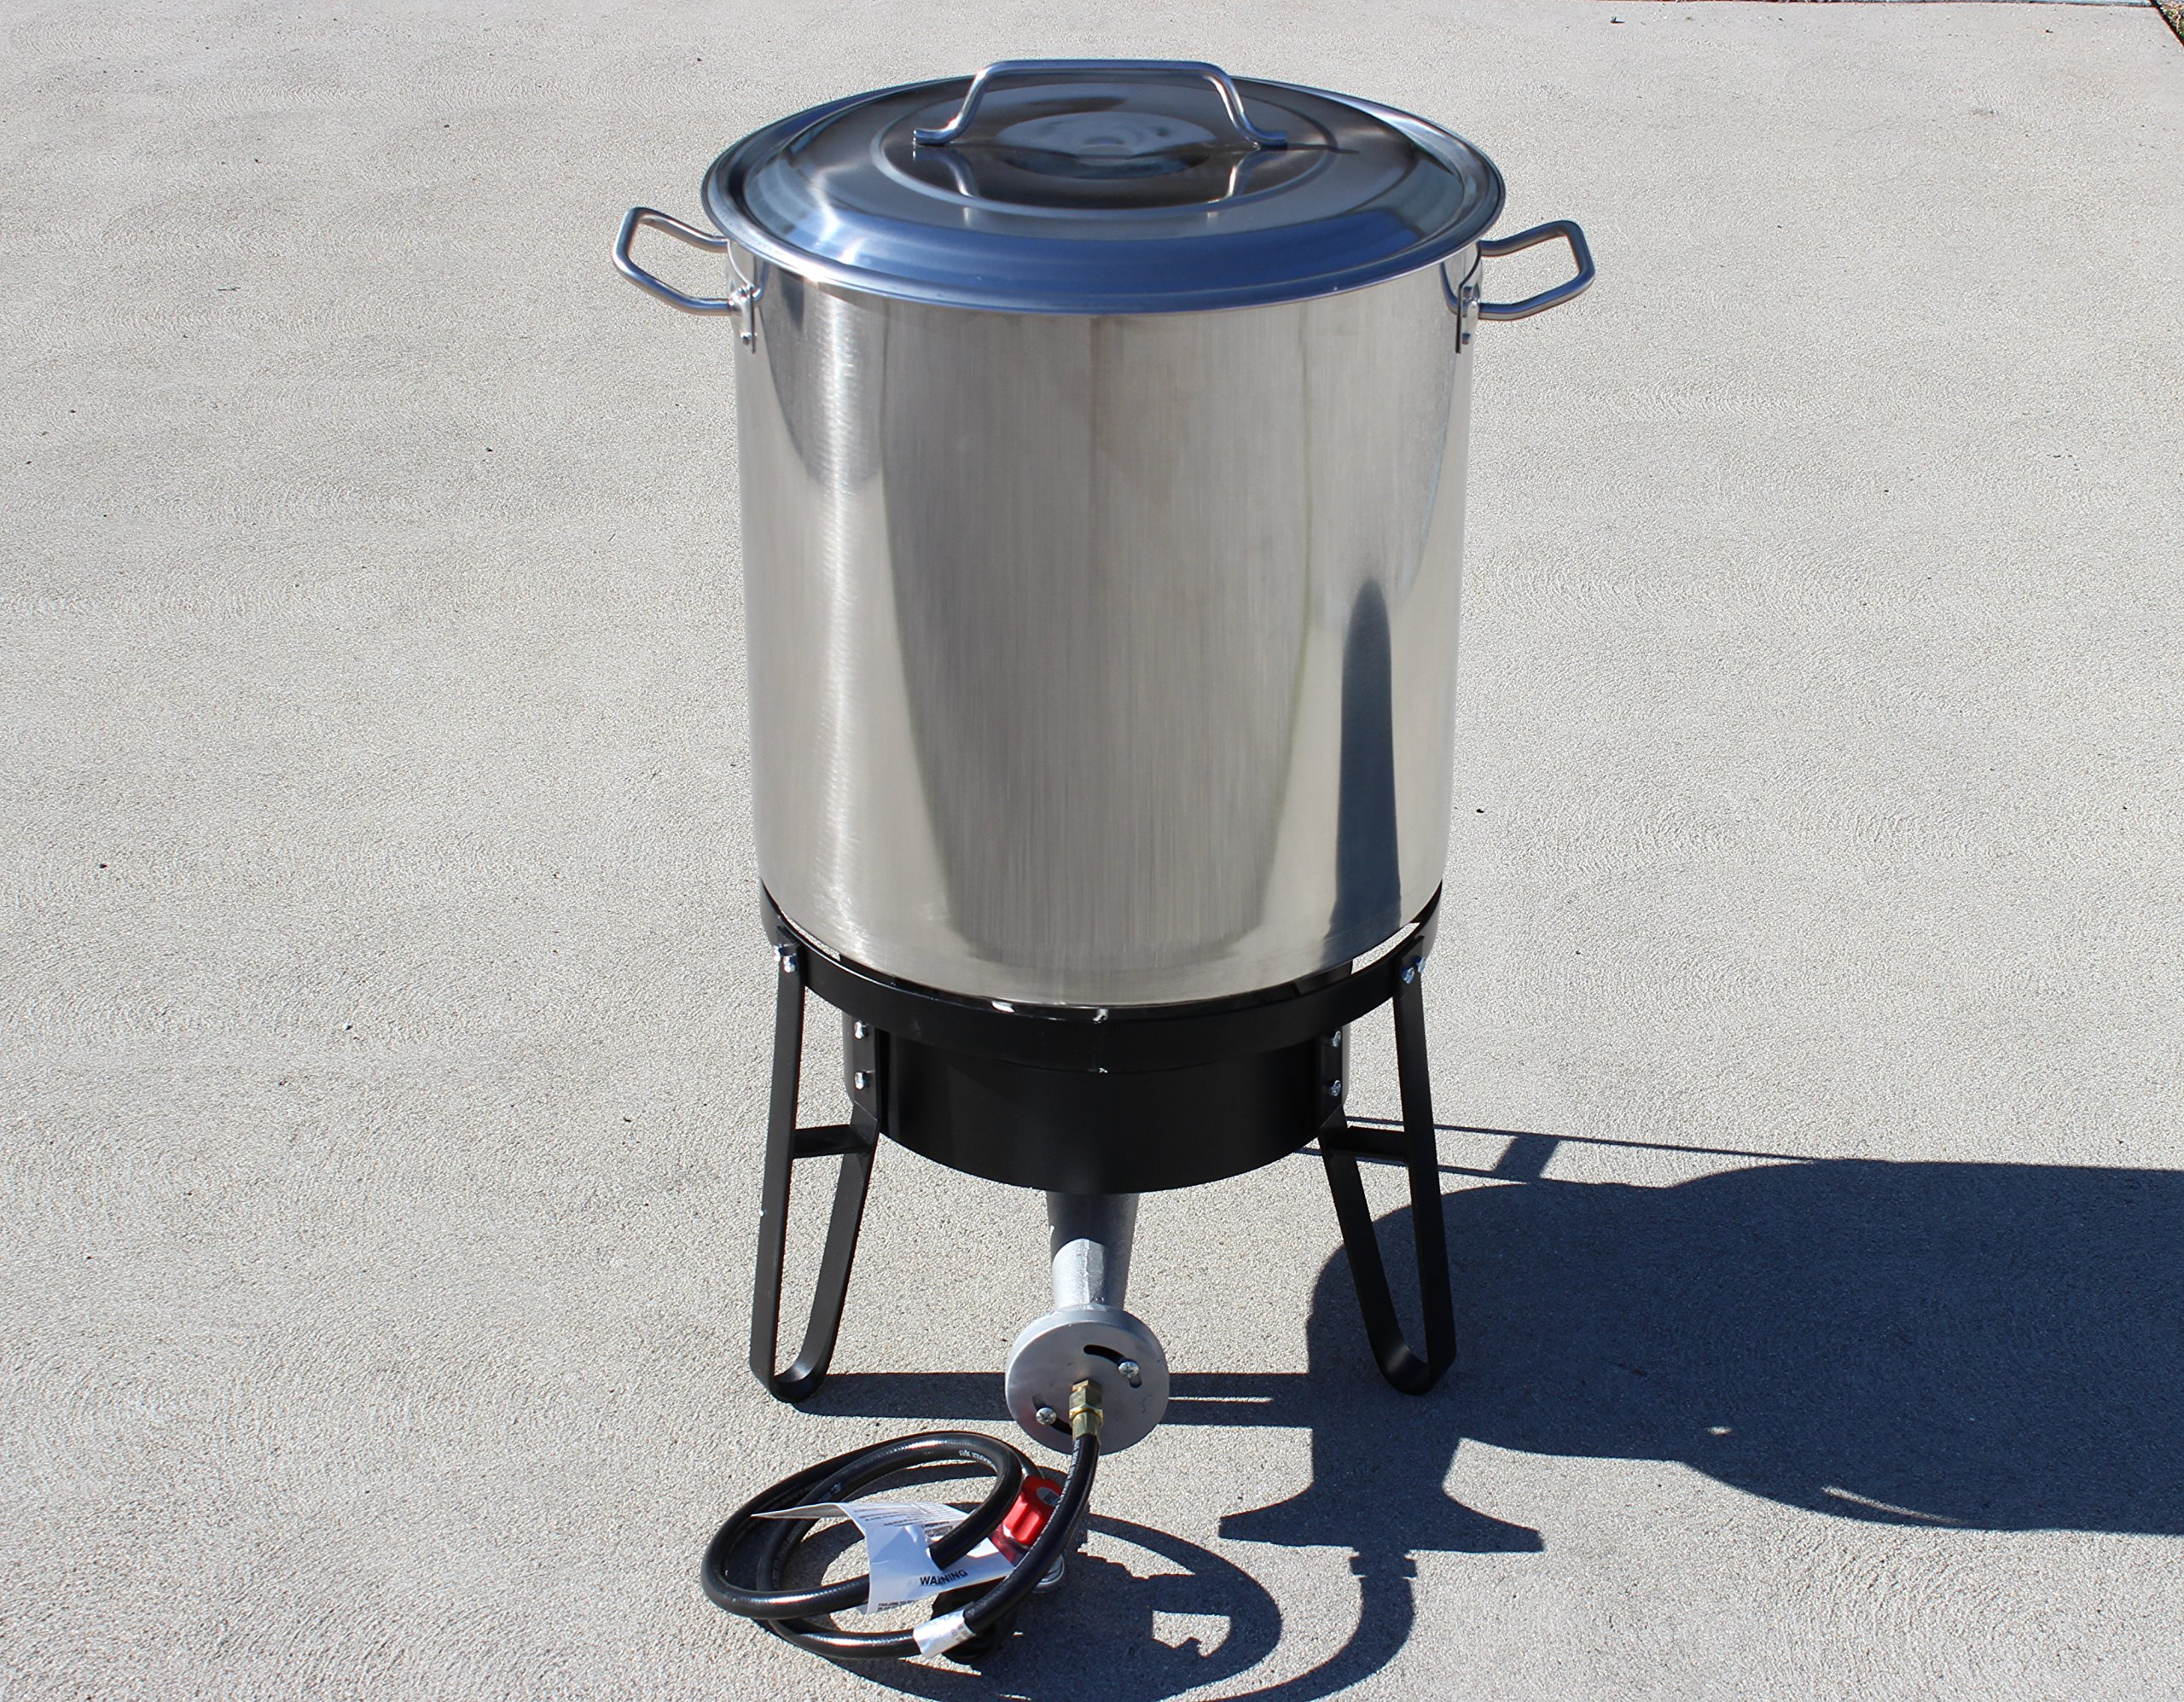 Concord Home Brew Stainless Steel Kettle with Single Burner Stand Set (120 Quart)